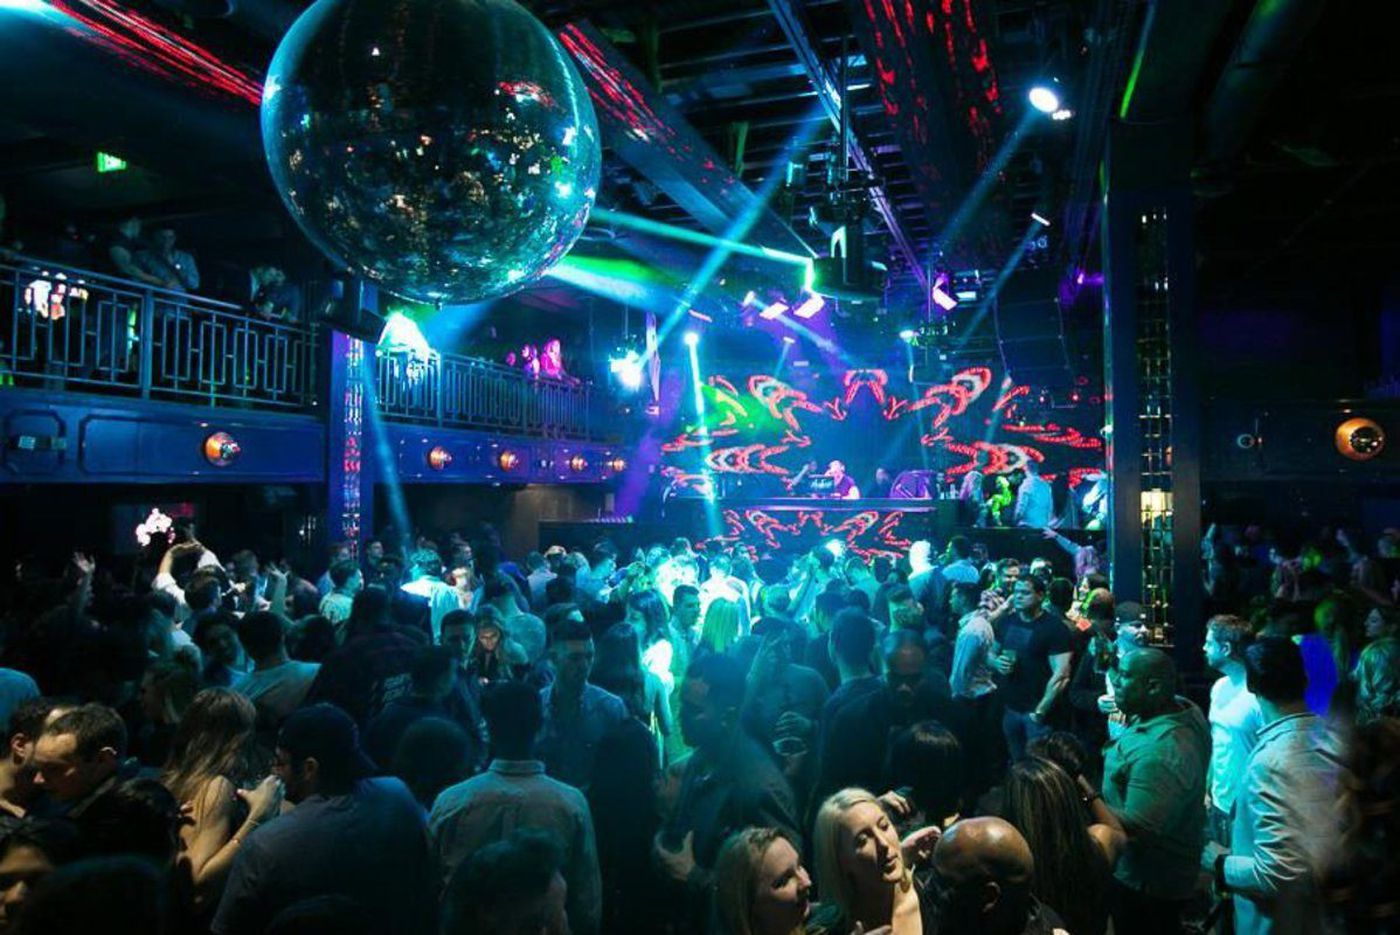 NOTO nightclub owners plan new floors of offices and dwellings atop dance venue